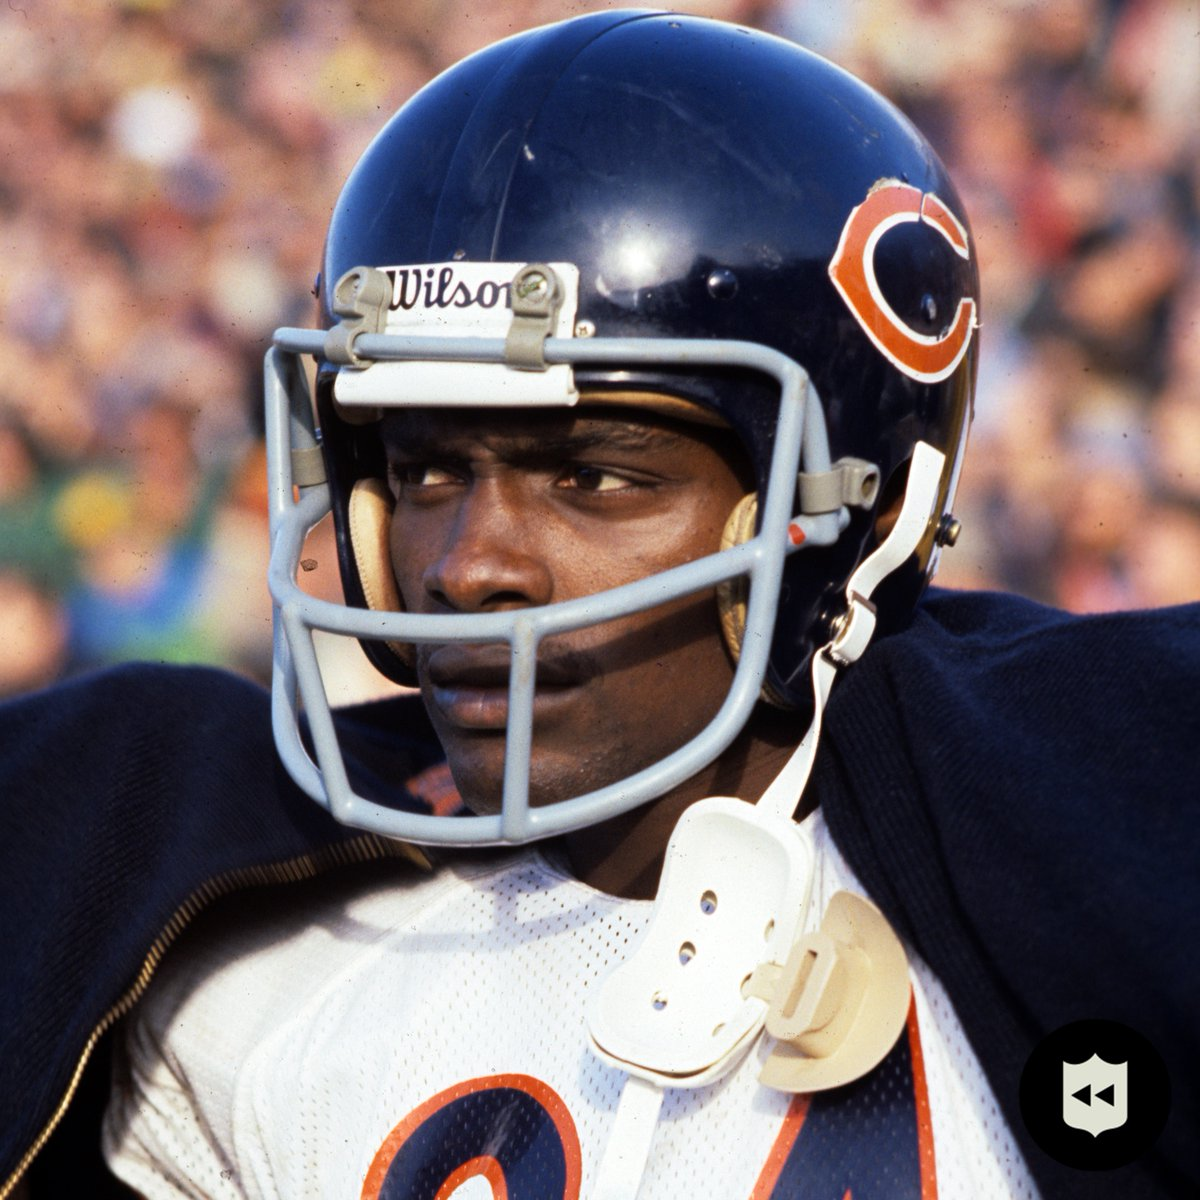 Sweetness would have turned 67 today. @walterpayton https://t.co/EFPTCT9wjG